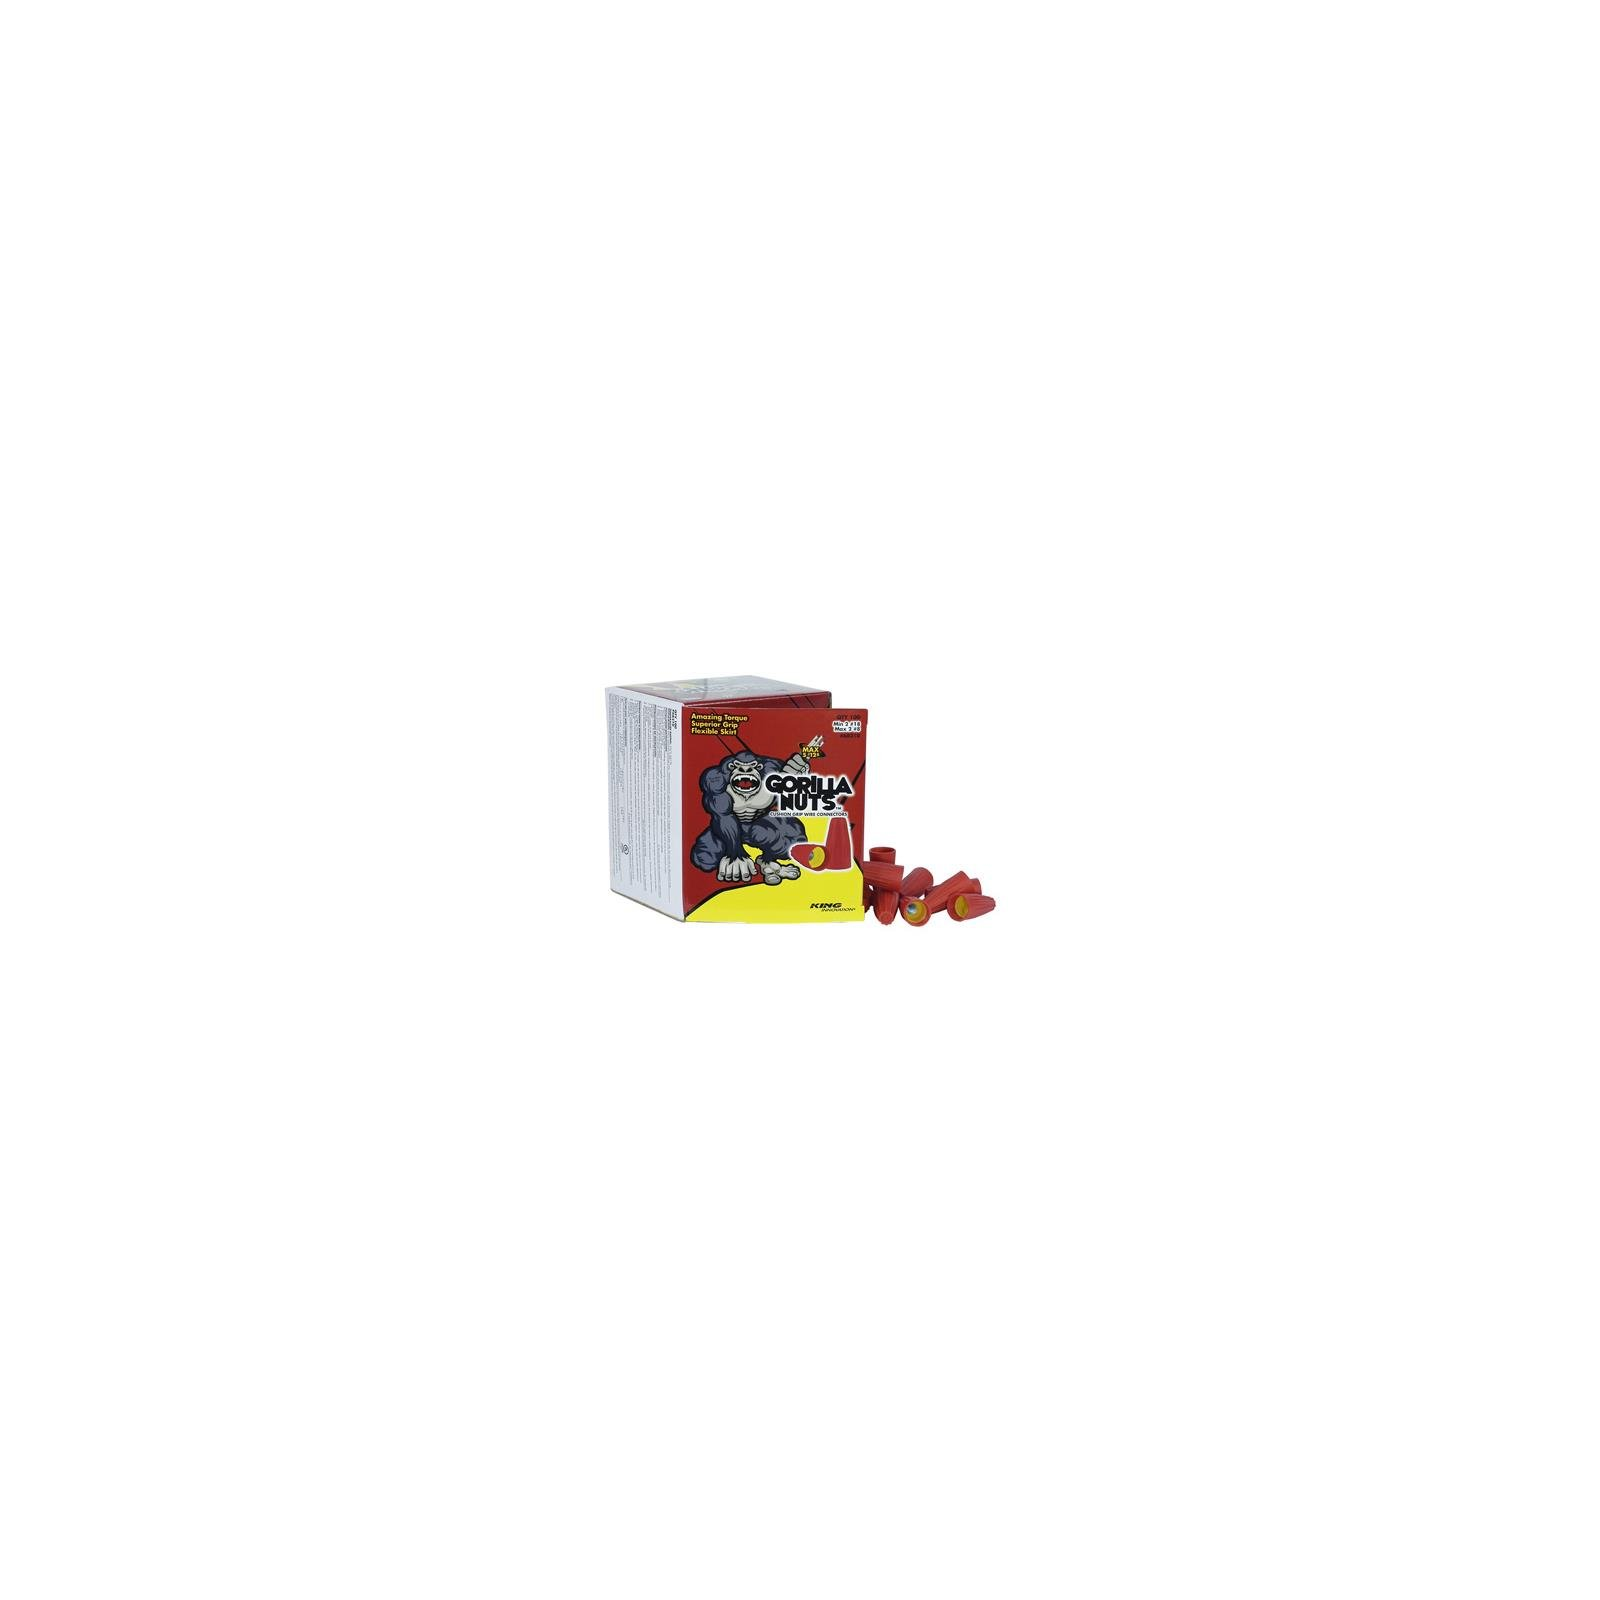 King Safety Products 68210 Gorilla Nuts™ 100 Count by King Safety (Image #1)